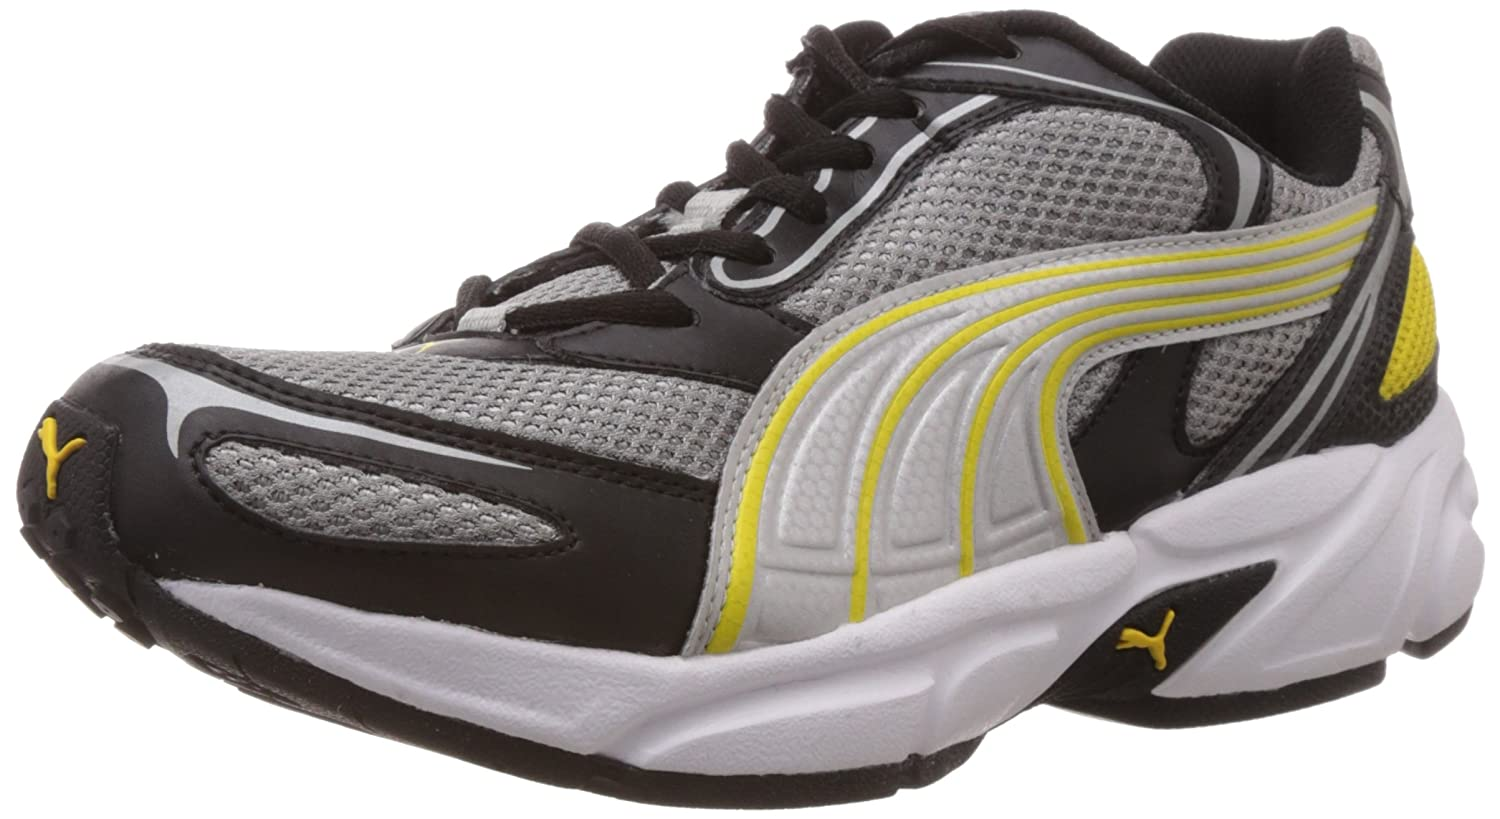 40% -70% Off On Sports Shoes Wear By Amazon